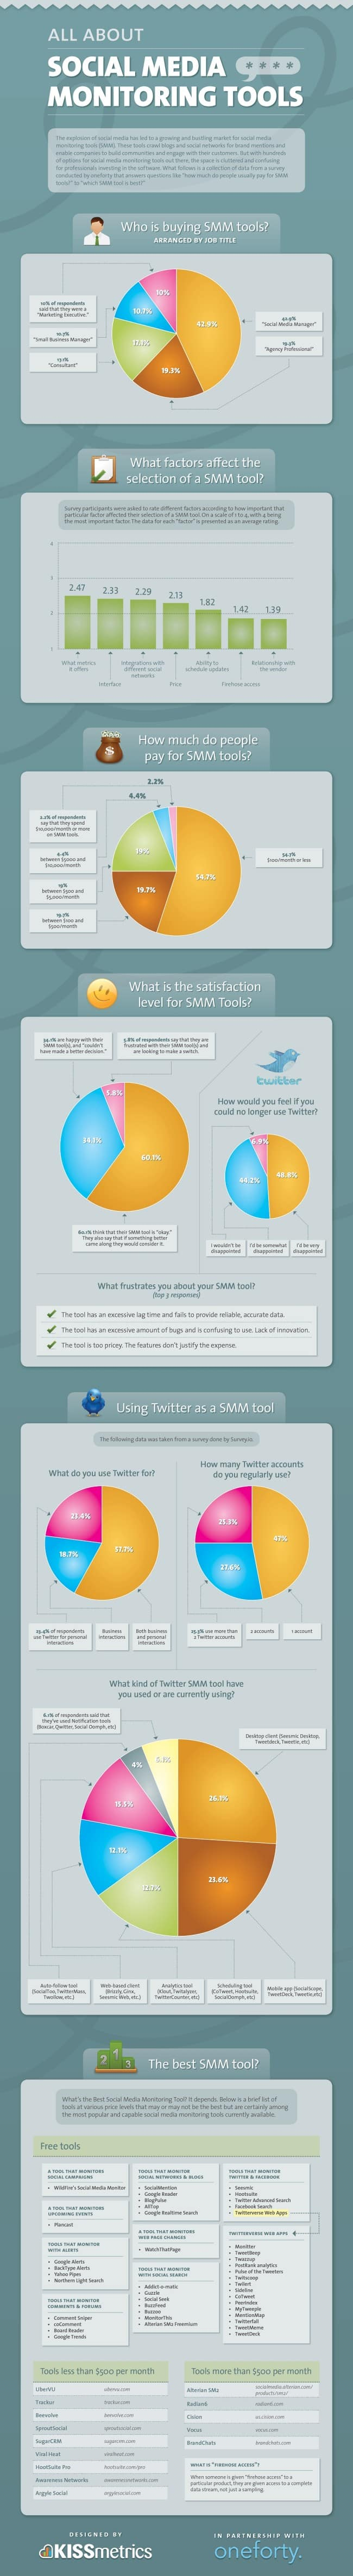 Definitive guide to the best social media monitoring tools #infographic